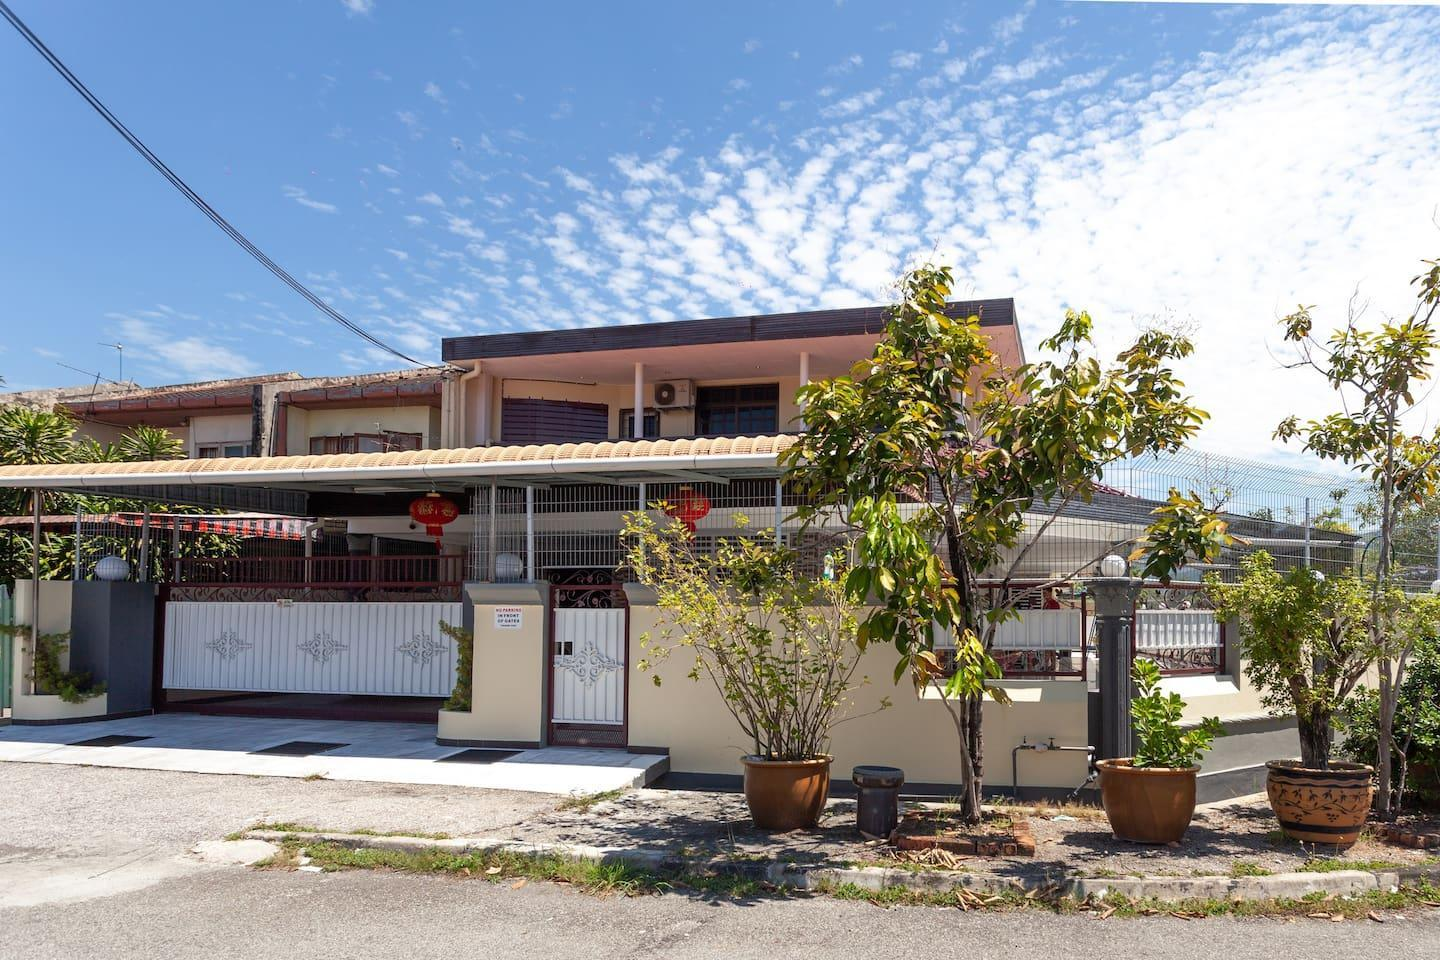 Sweet Hut Suites In Ipoh For 20+ Pax